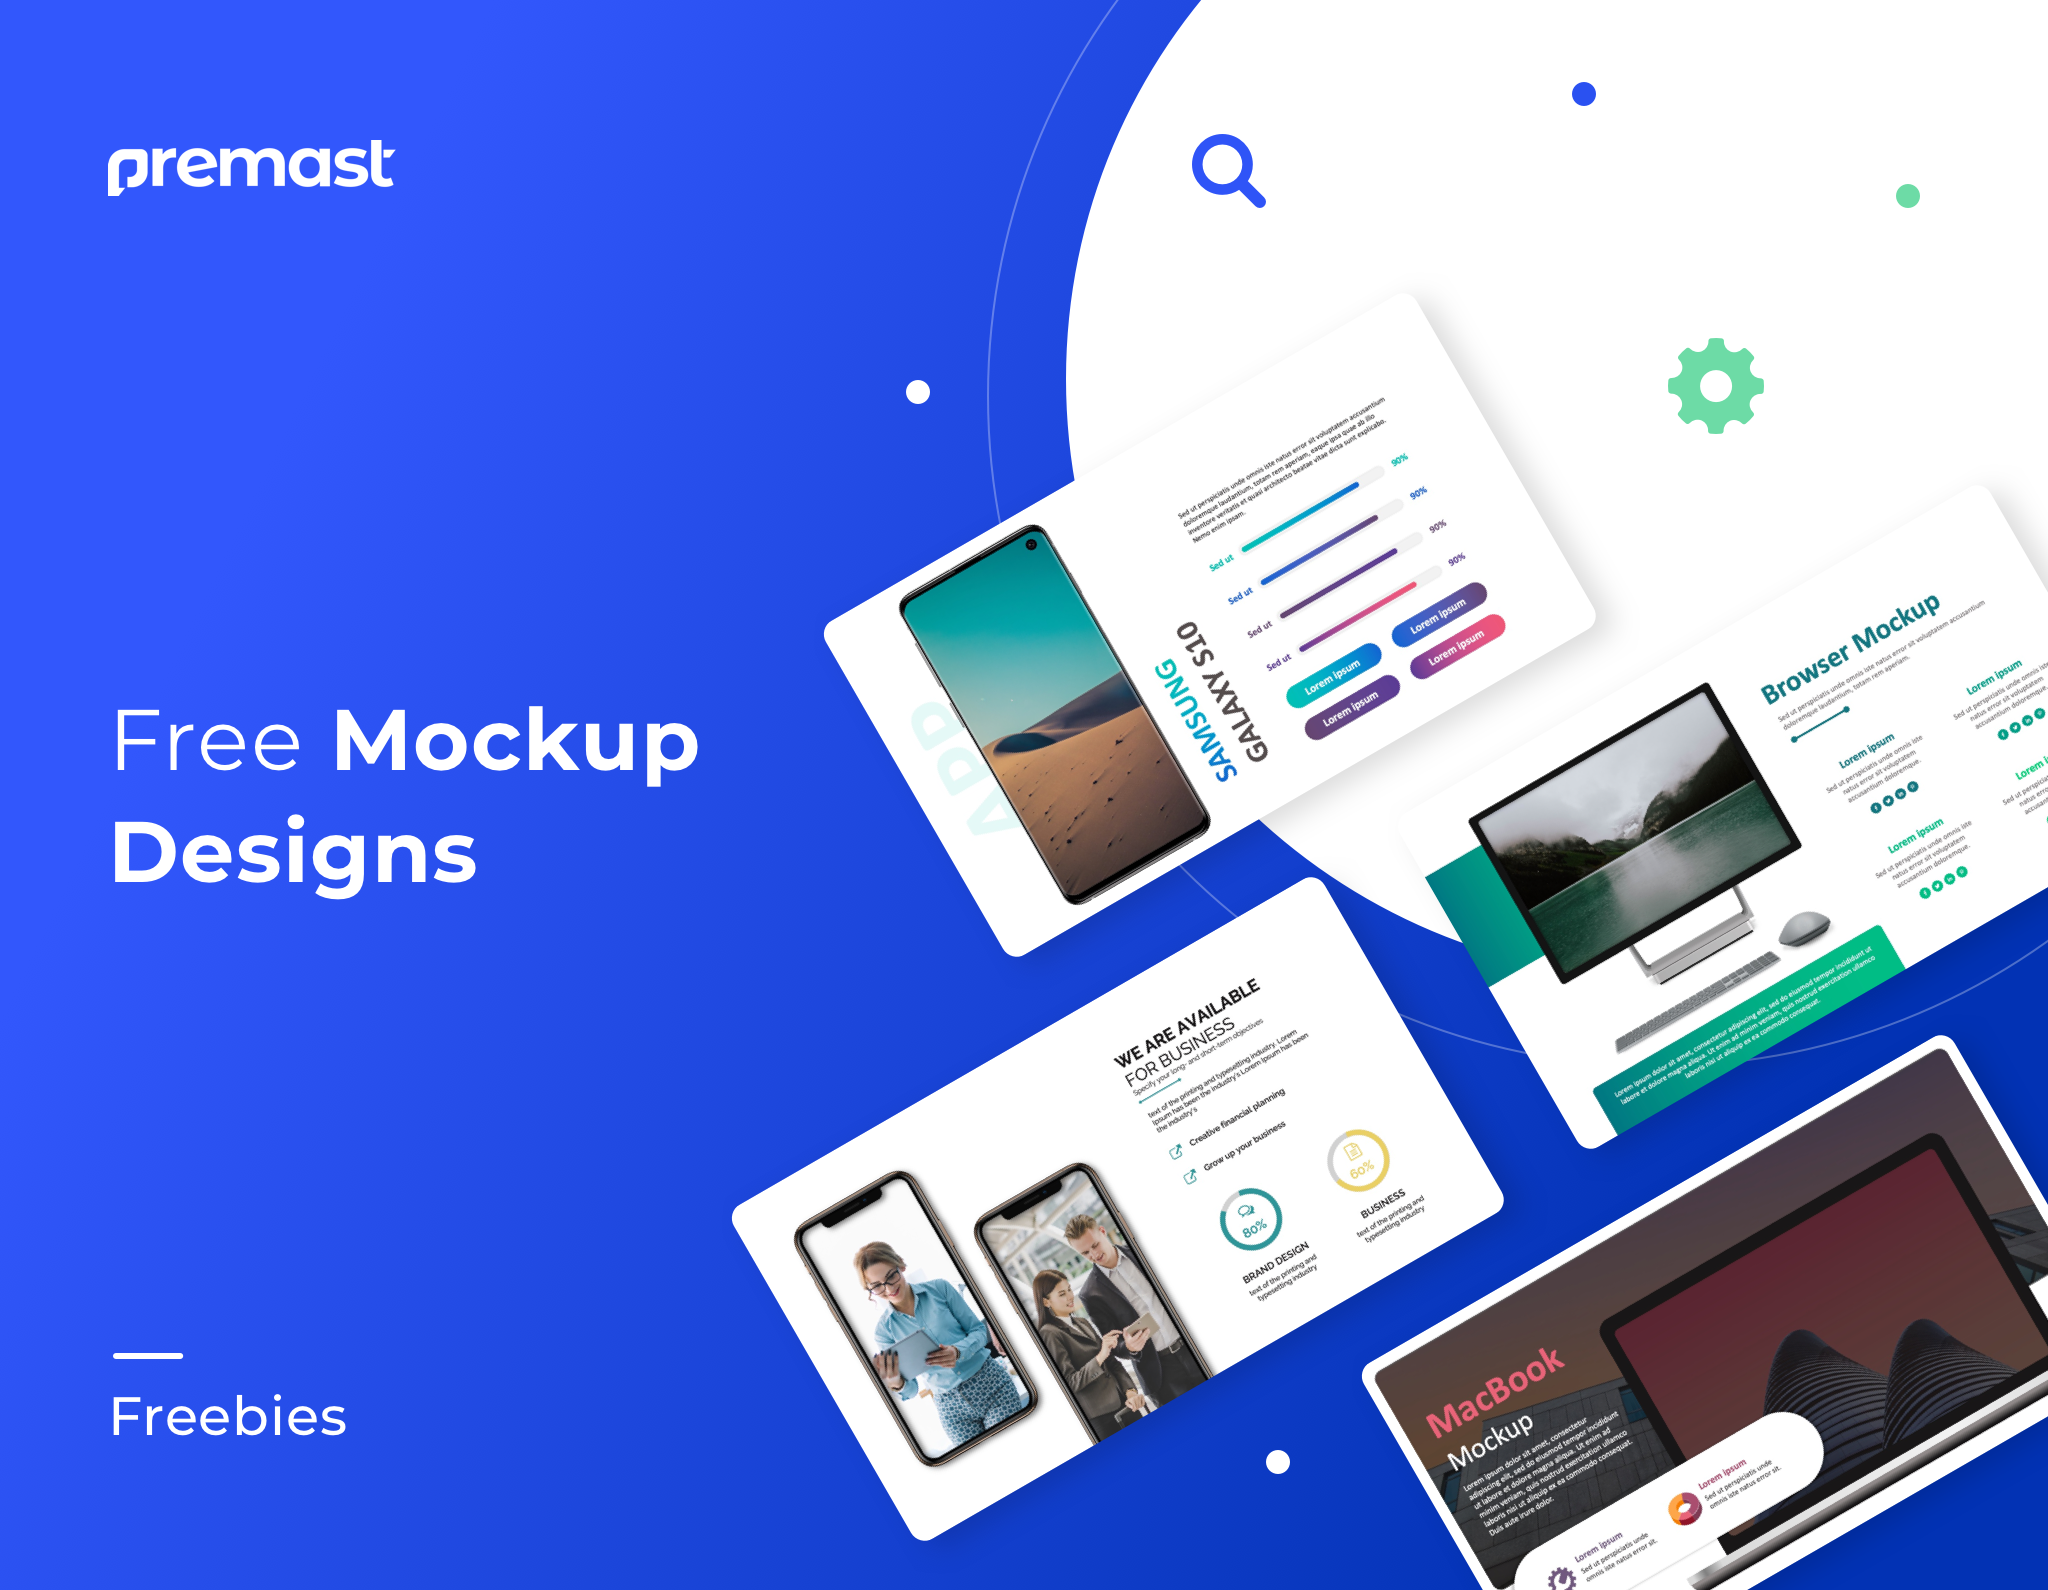 Multiple Free Mockups designs – Editable with unlimited options